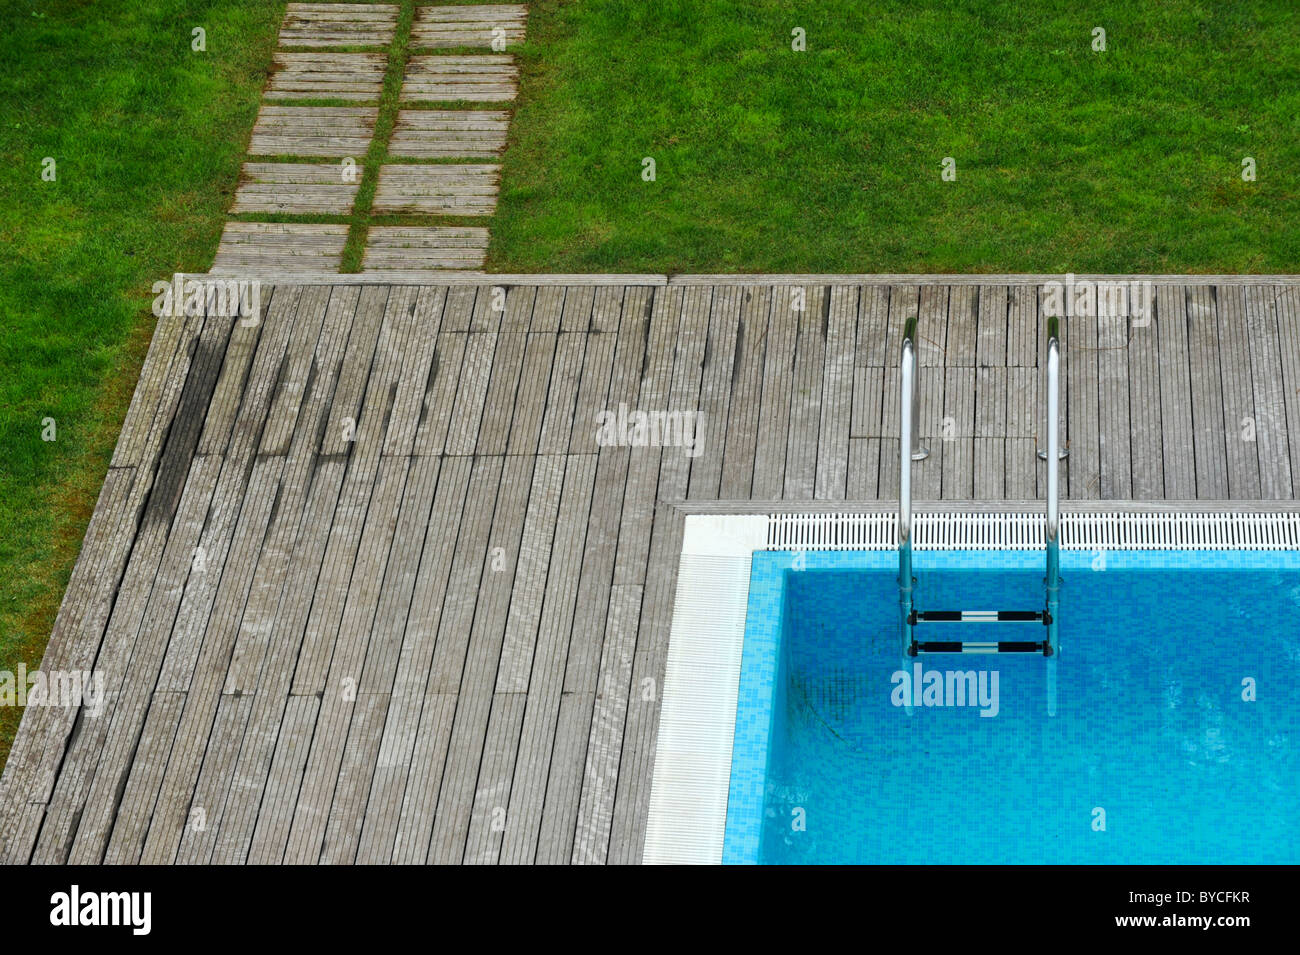 Aerial view of an outdoor swimming pool with wood deck and lawn Stock Photo